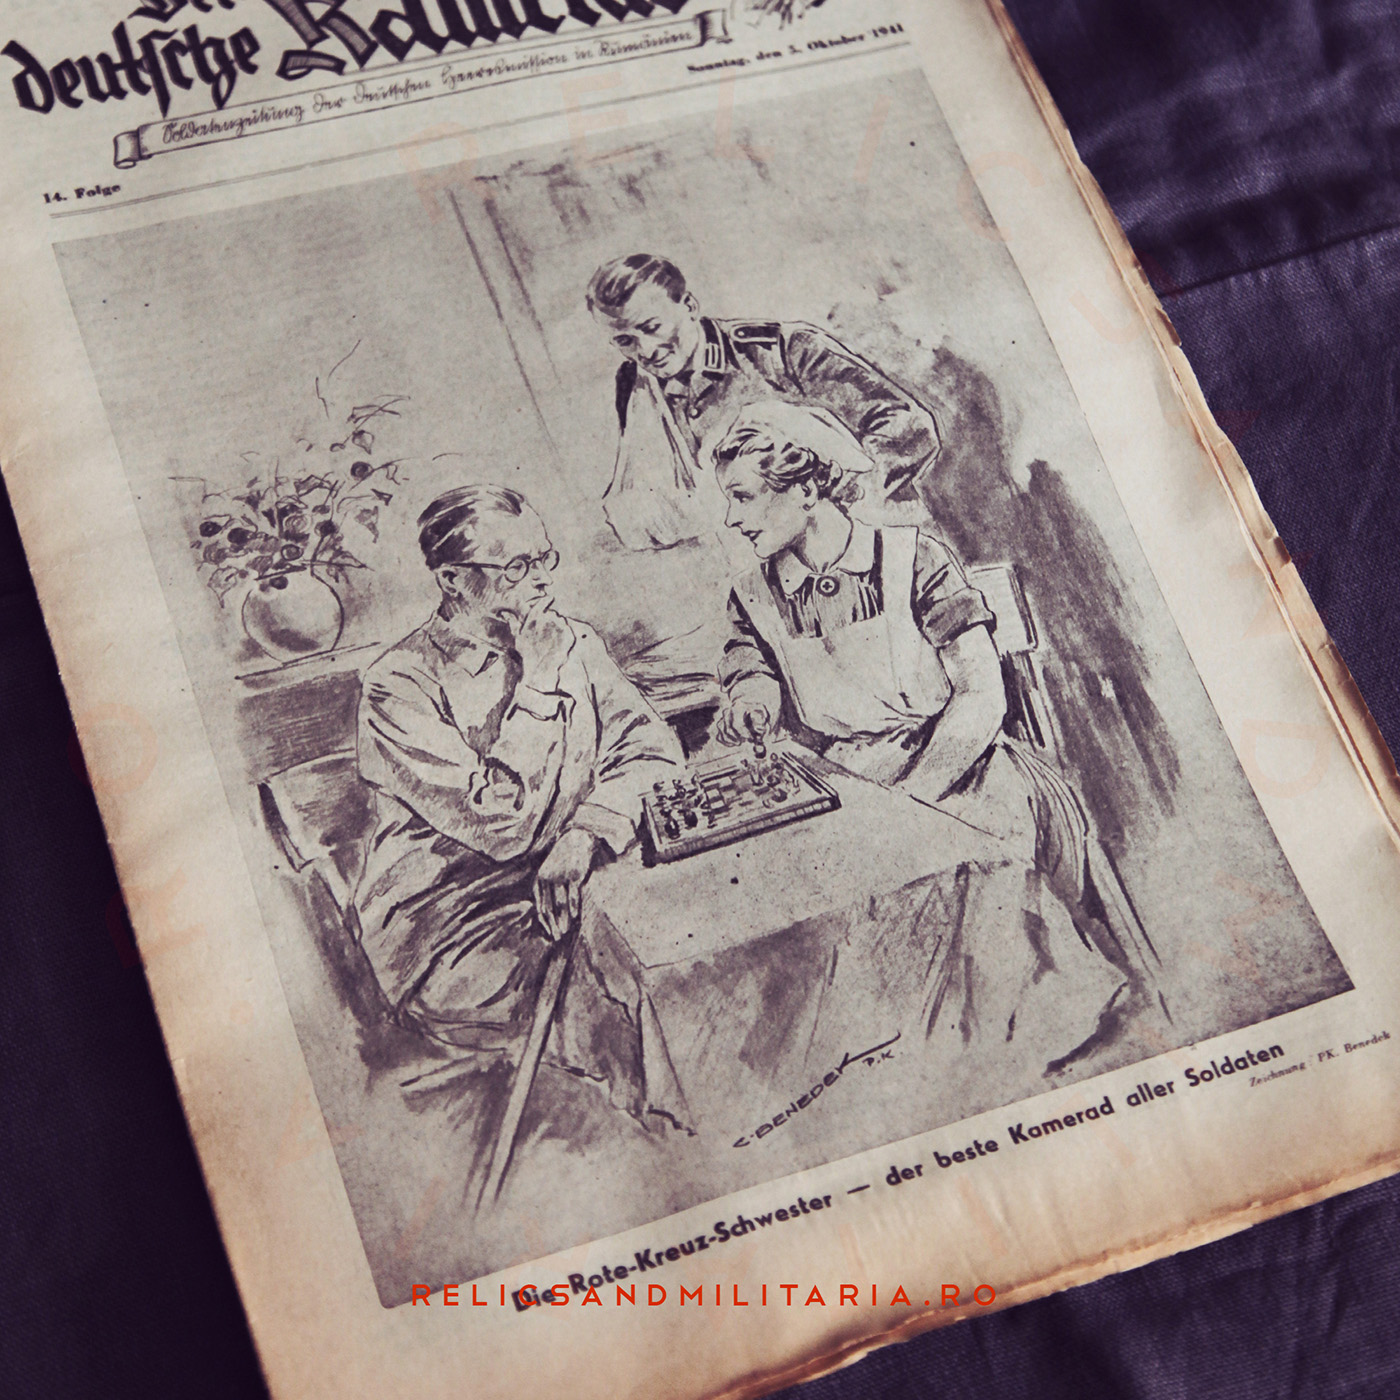 Der deutsche kamerad - ww2 newspaper